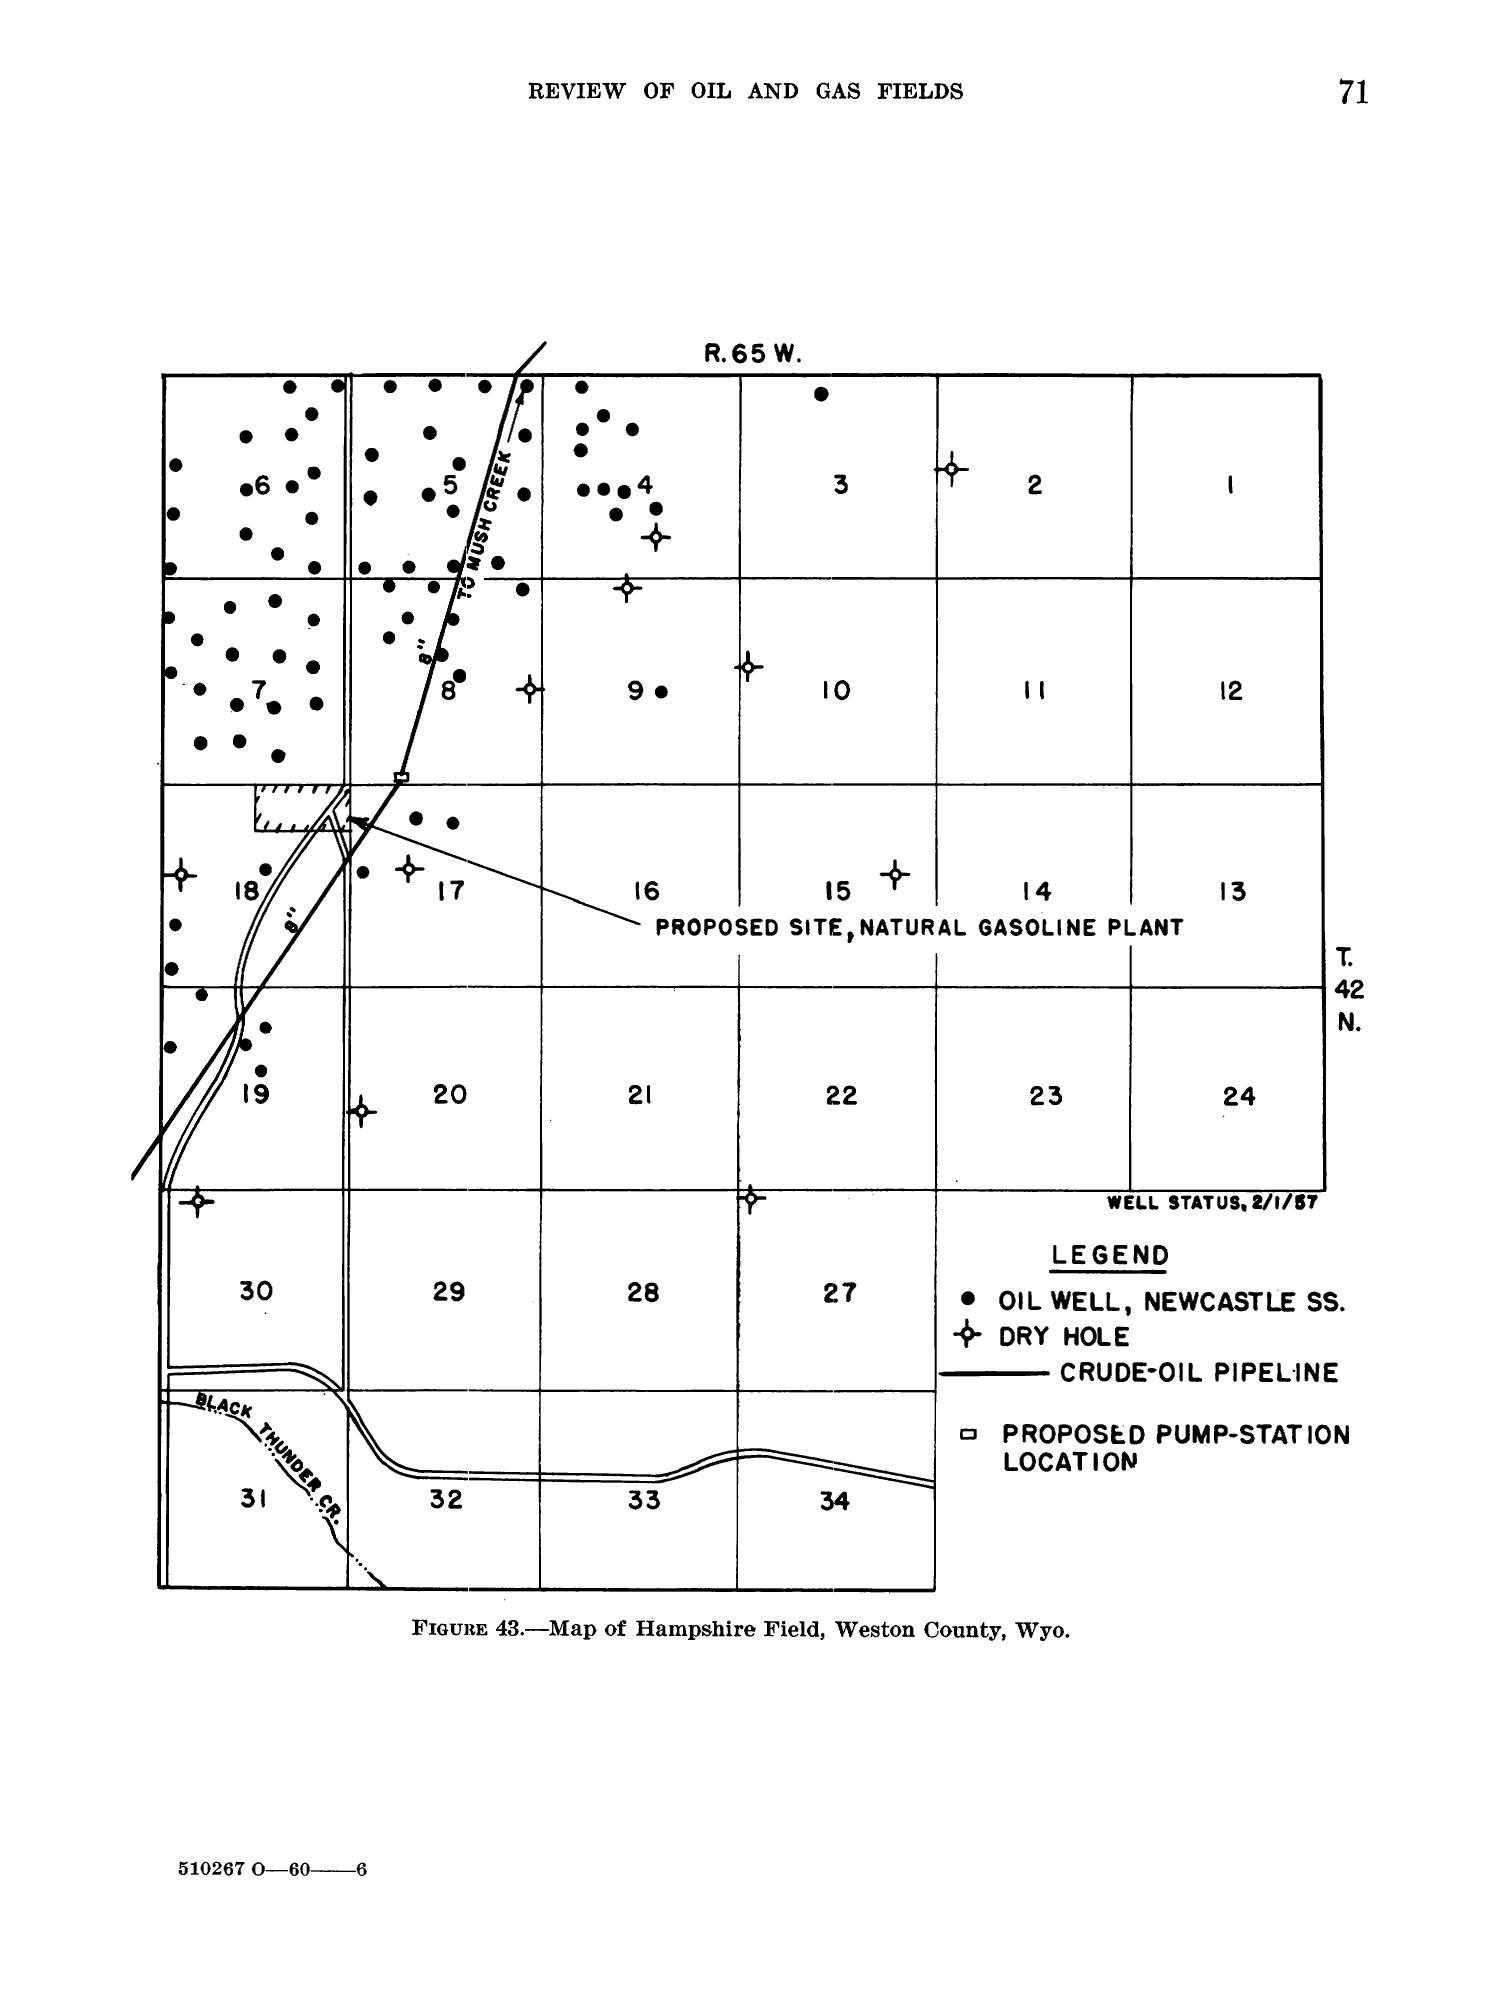 Petroleum and Natural Gas Fields in Wyoming                                                                                                      71